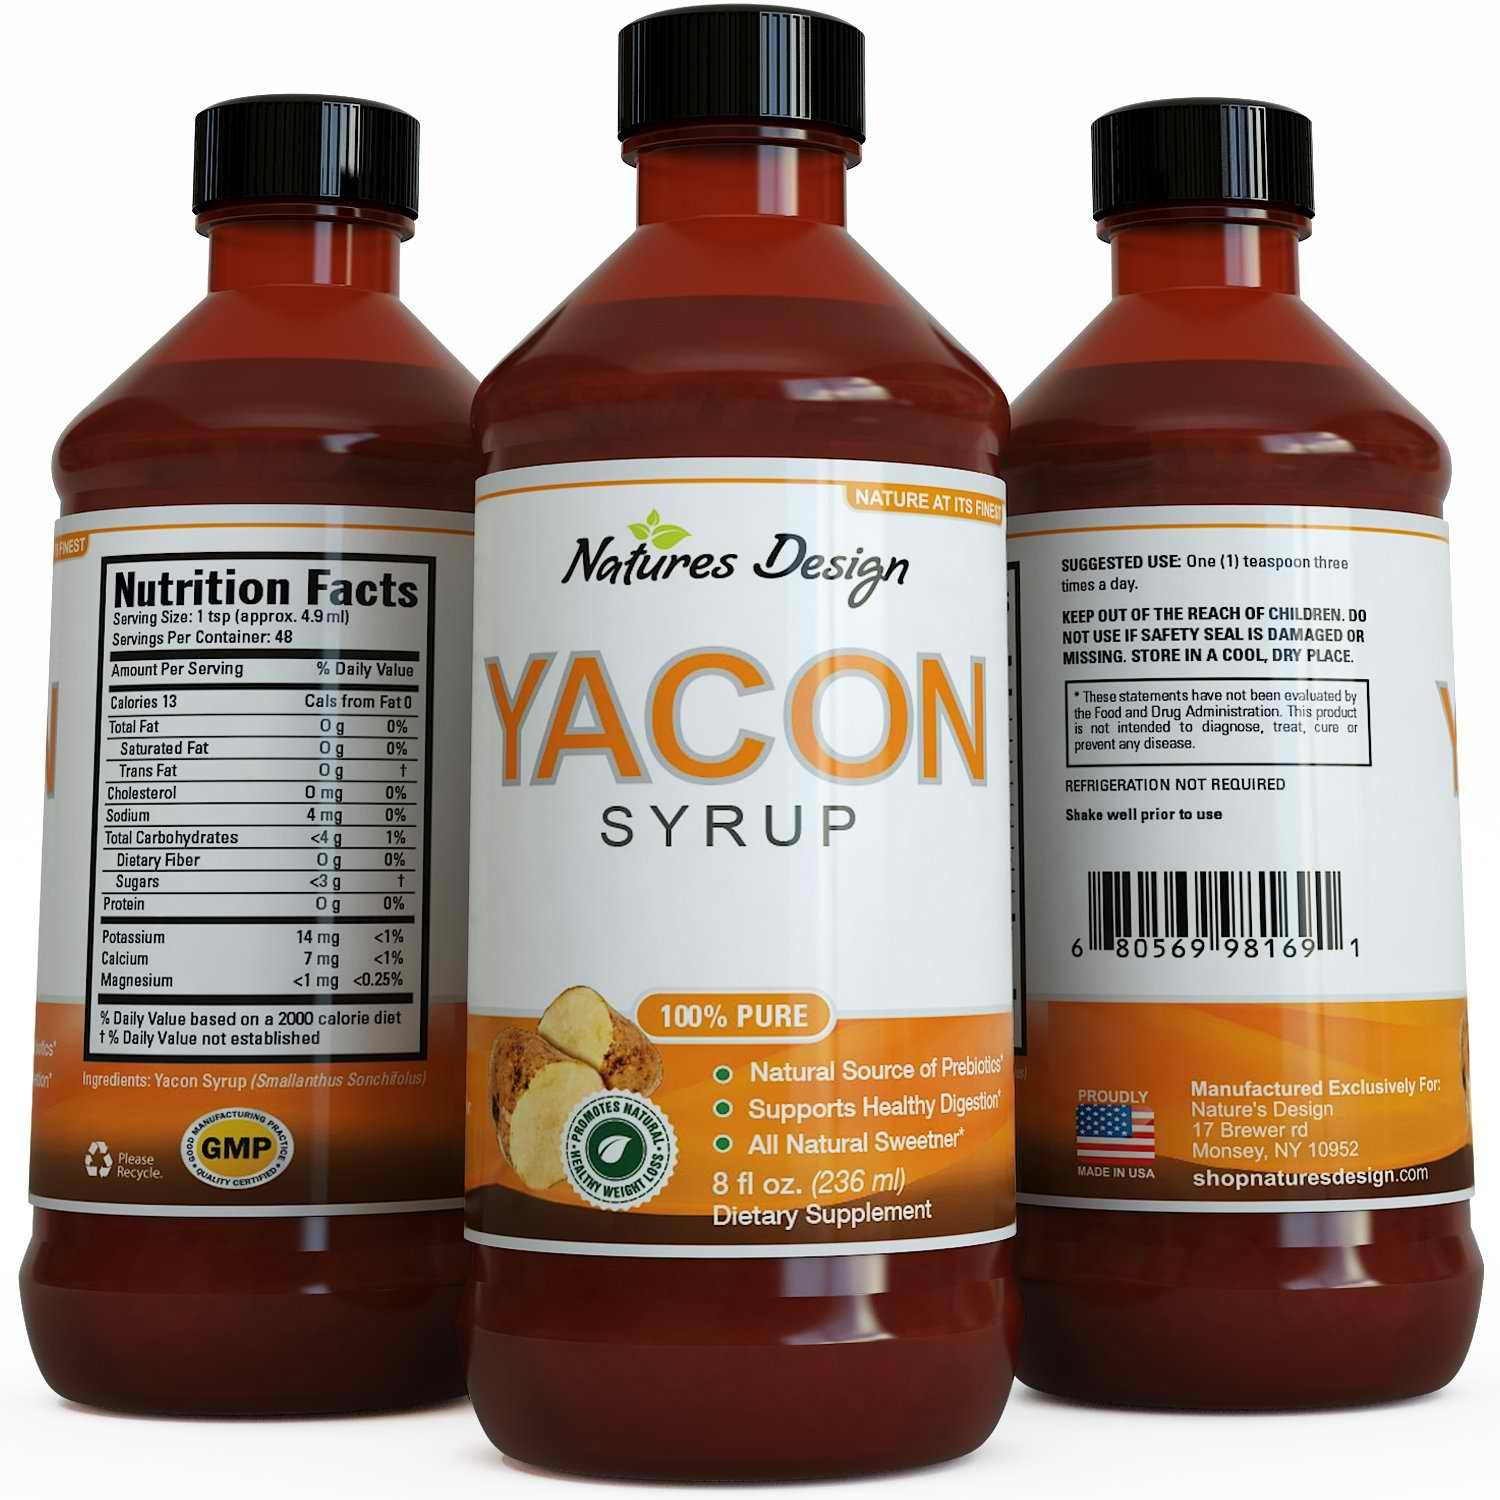 Pure Yacon Syrup for Women & Men - Natural Sweetener ★ Highest Grade & Quality ★ Ultra Strength, Potency & 100% Natural, Safe Weight Loss - Guaranteed By Natures Design by Natures Design (Image #1)